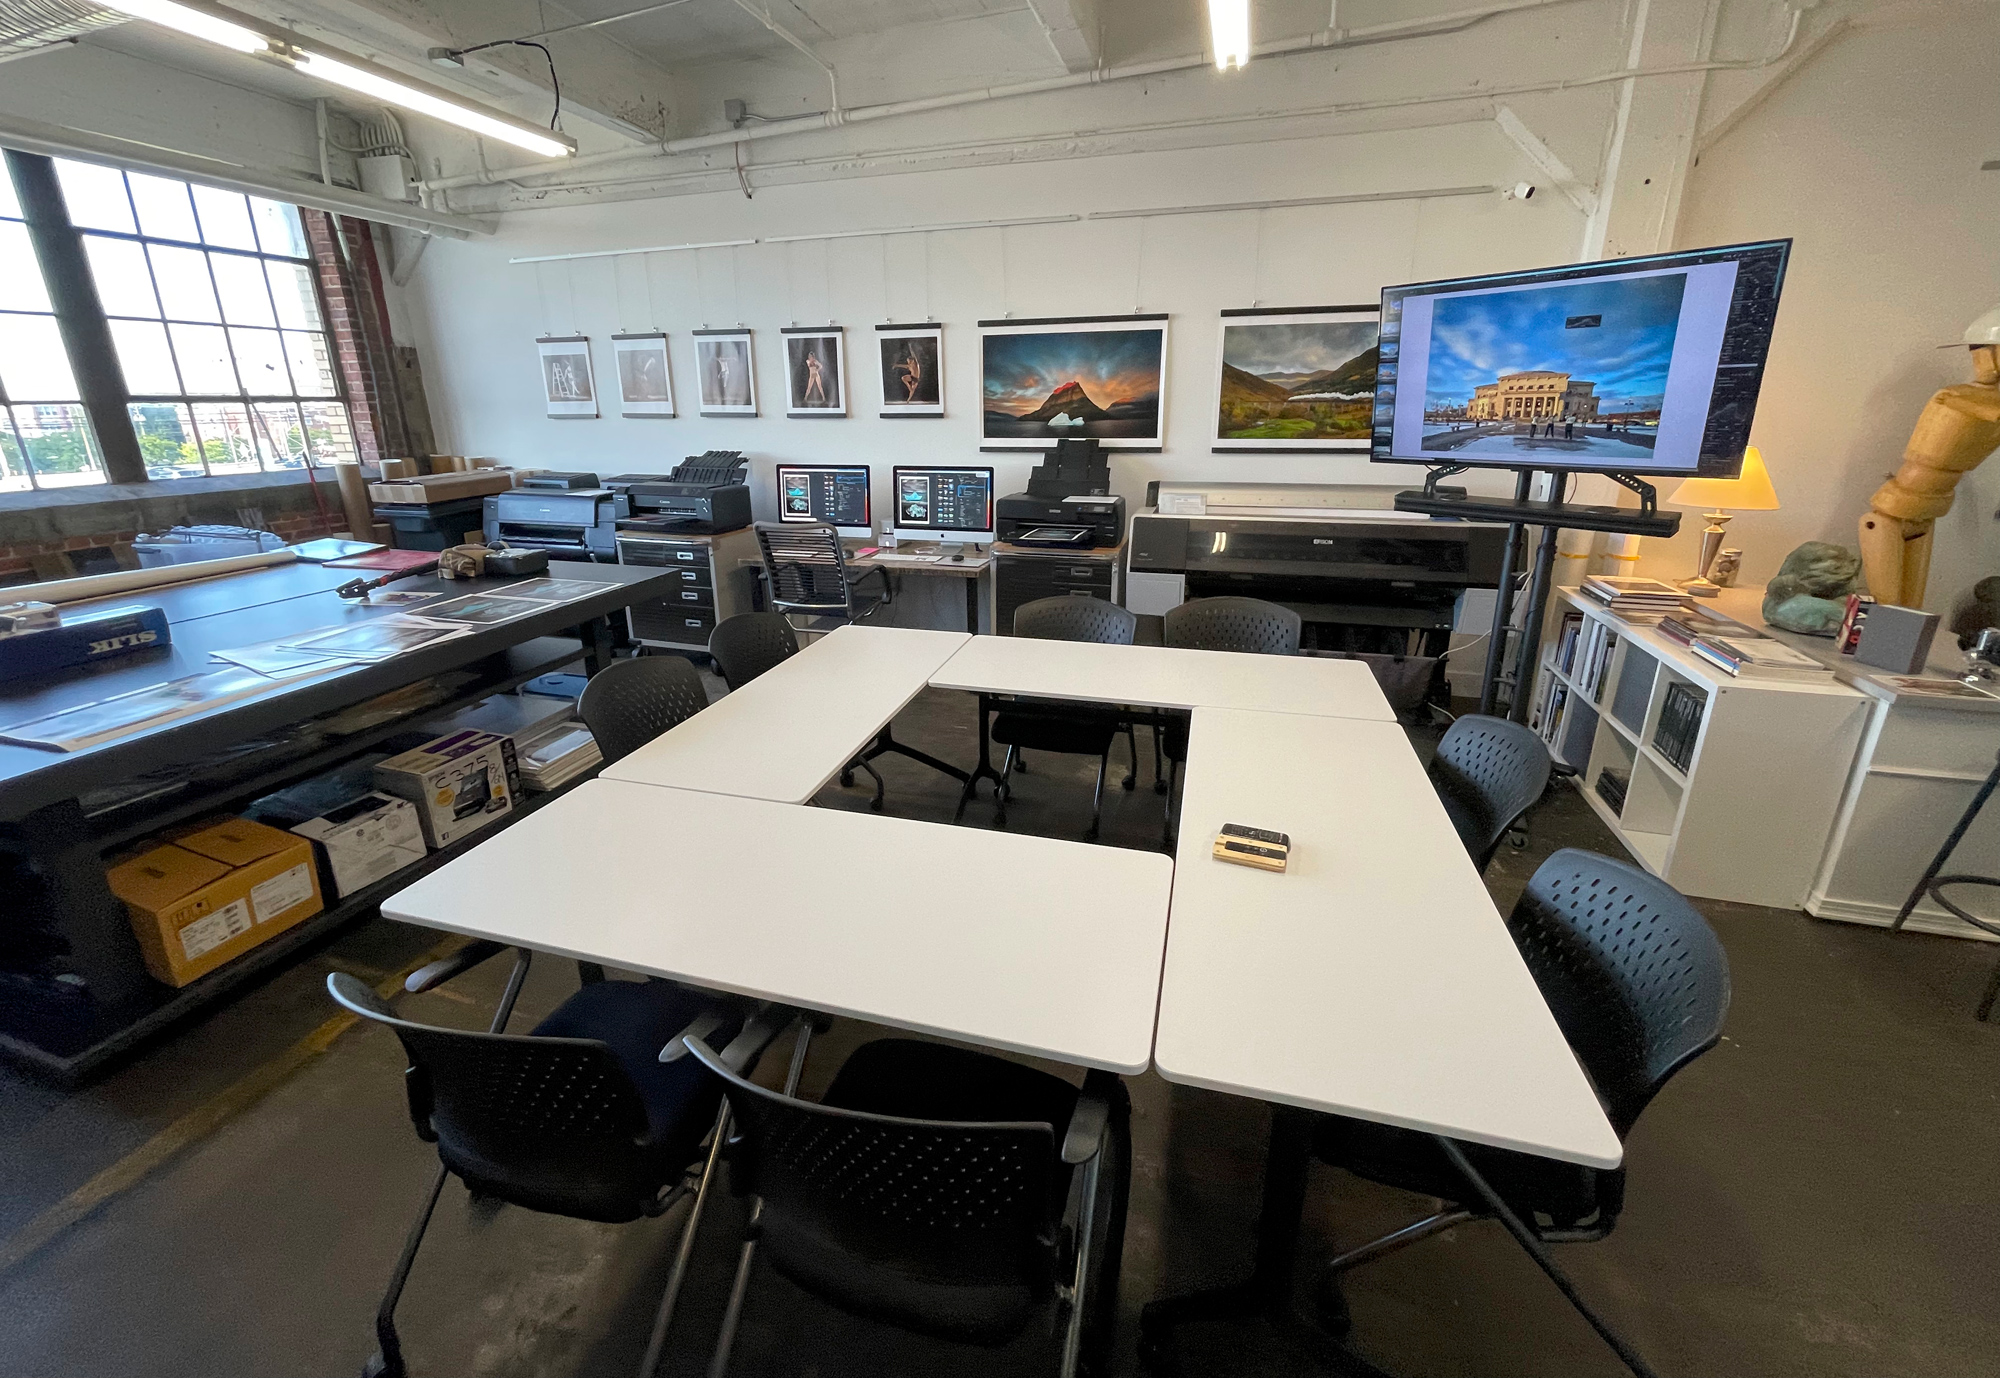 Our classroom tables can be configured in a few ways